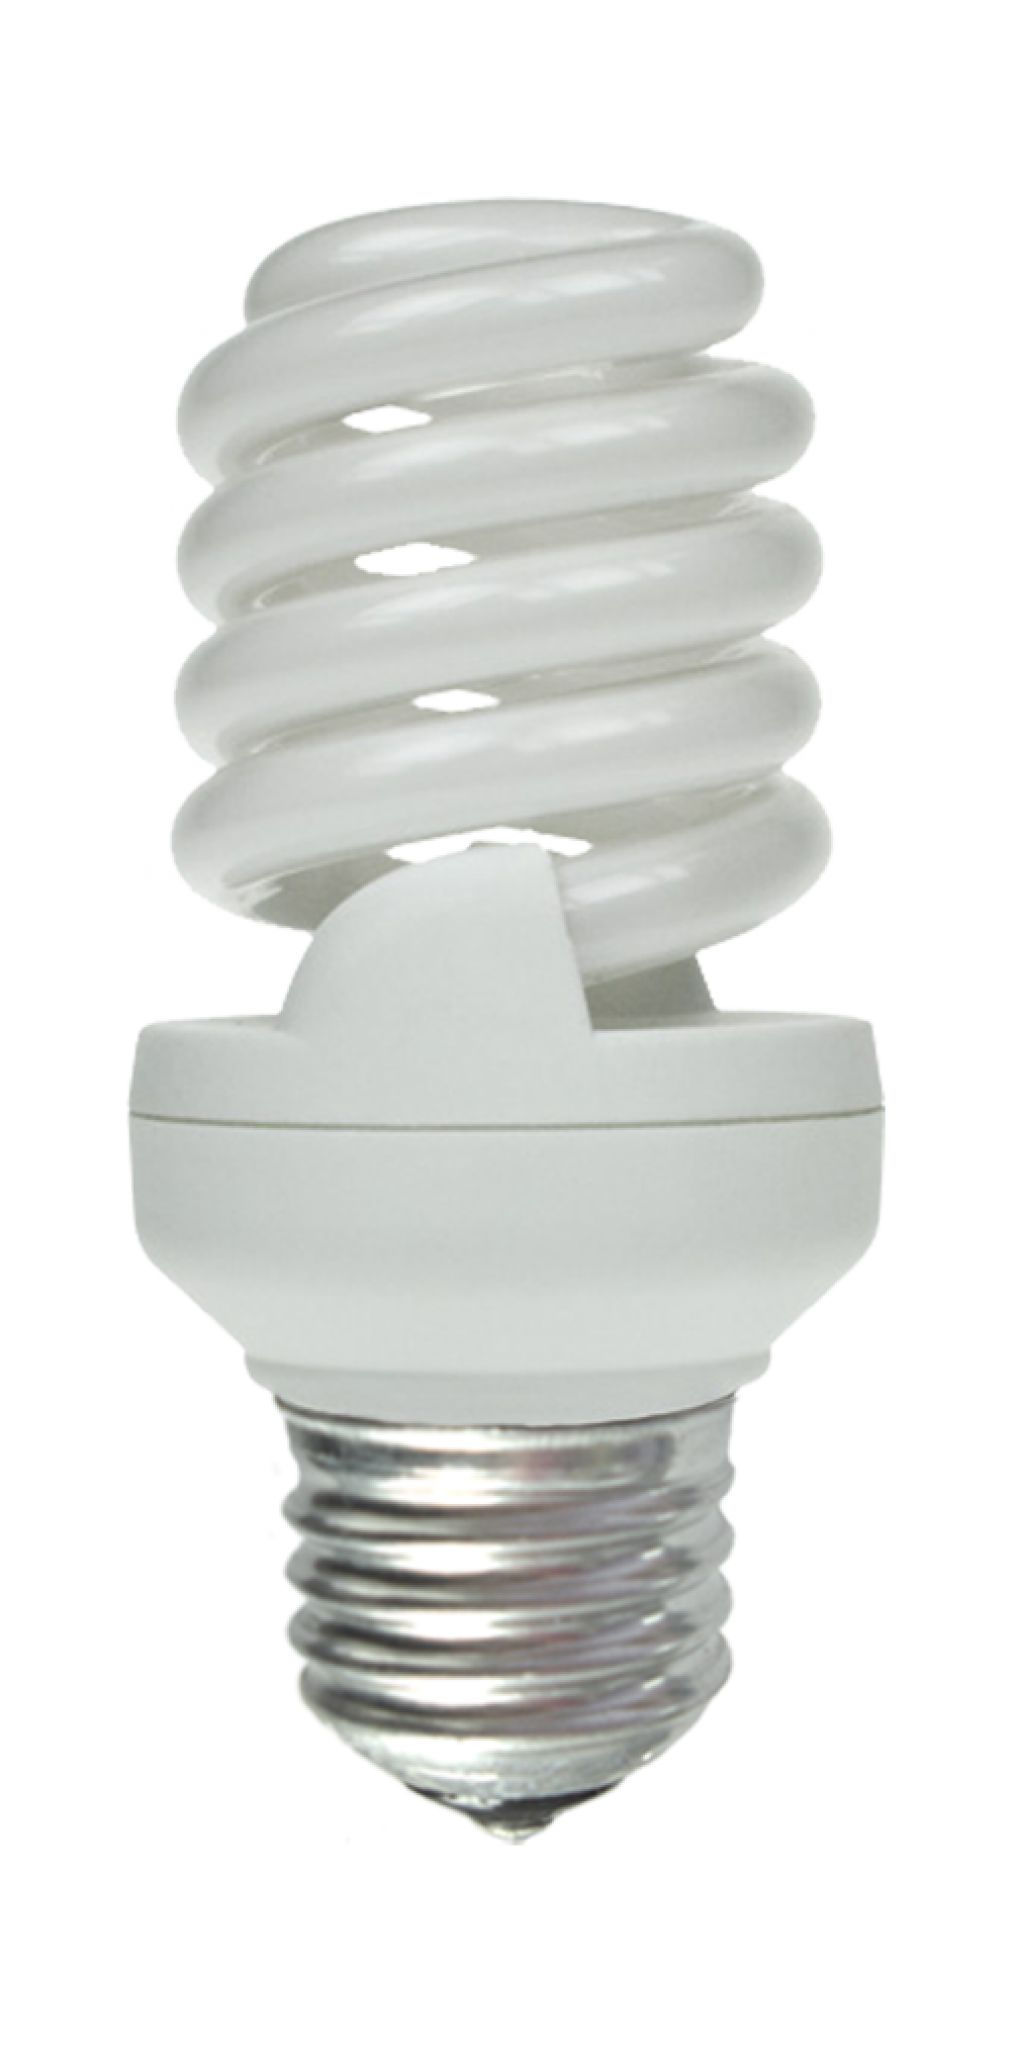 gx53 low energy led disc light bulb warm white twist and lock. Black Bedroom Furniture Sets. Home Design Ideas